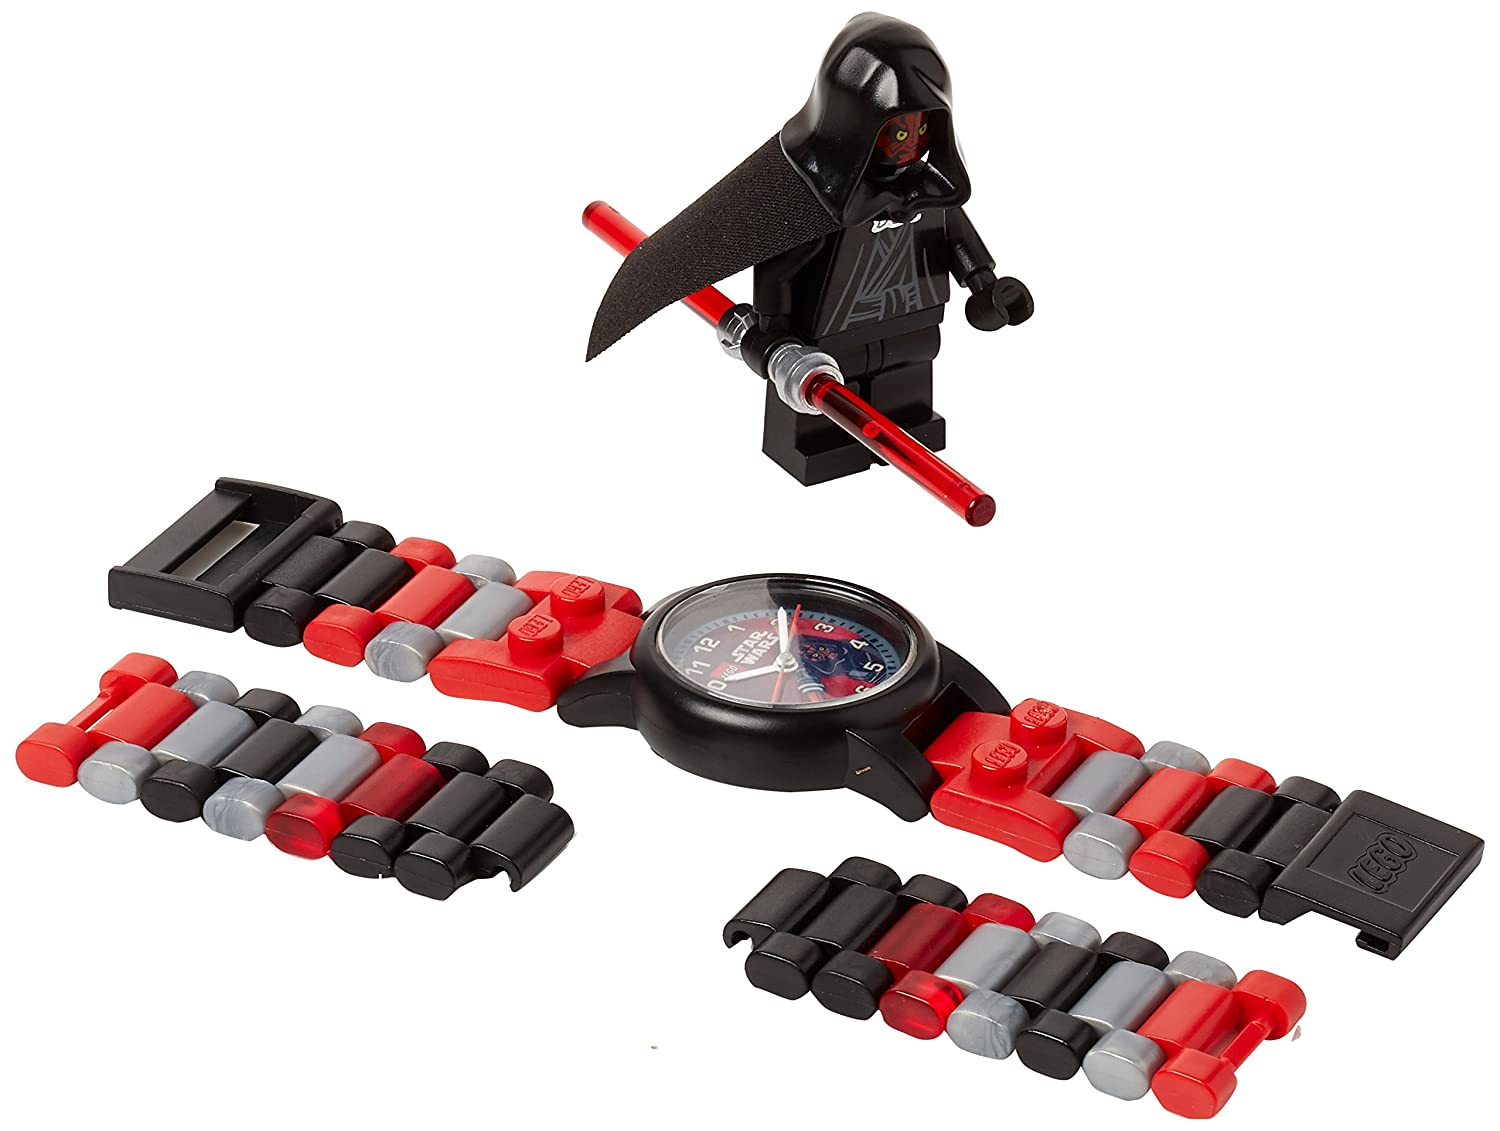 Amazon.com: LEGO 9004315 Star Wars Darth Maul Kids Buildable Watch with Link Bracelet and Minifigure | Black/red |Plastic | 25mm case Diameter| Analogue ...